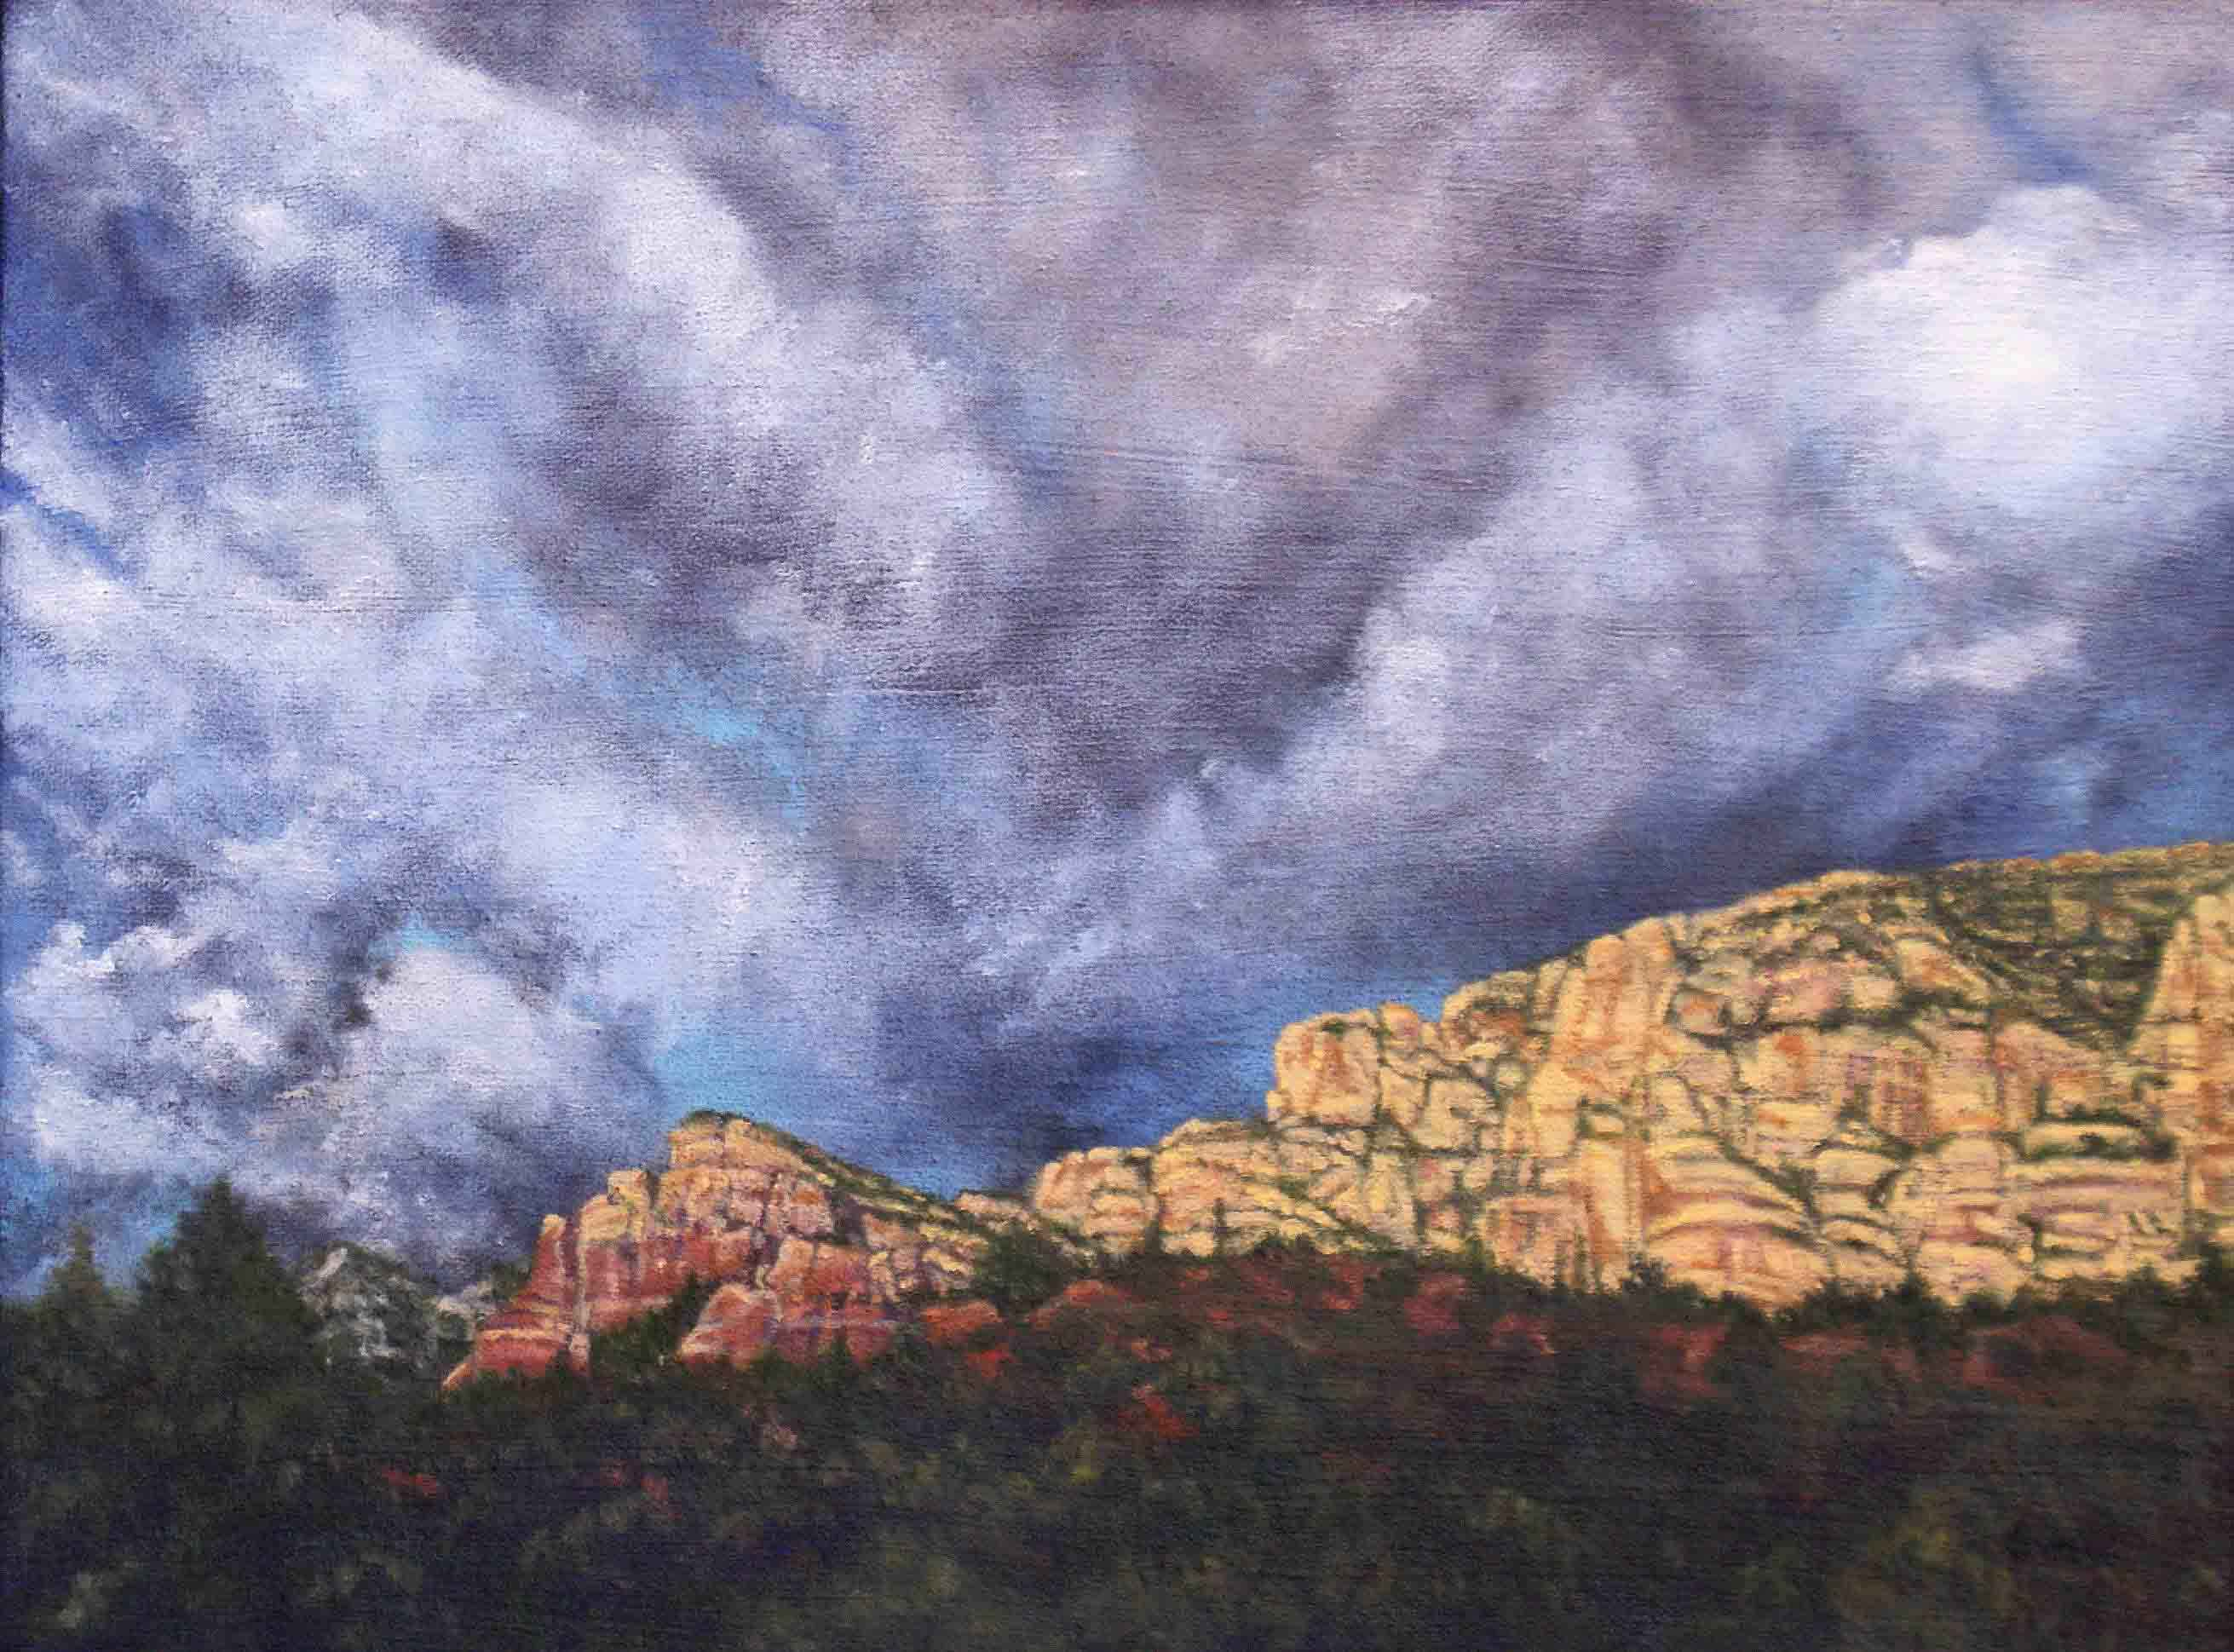 Storm Over Dry Creek by  Syri Hall - Masterpiece Online